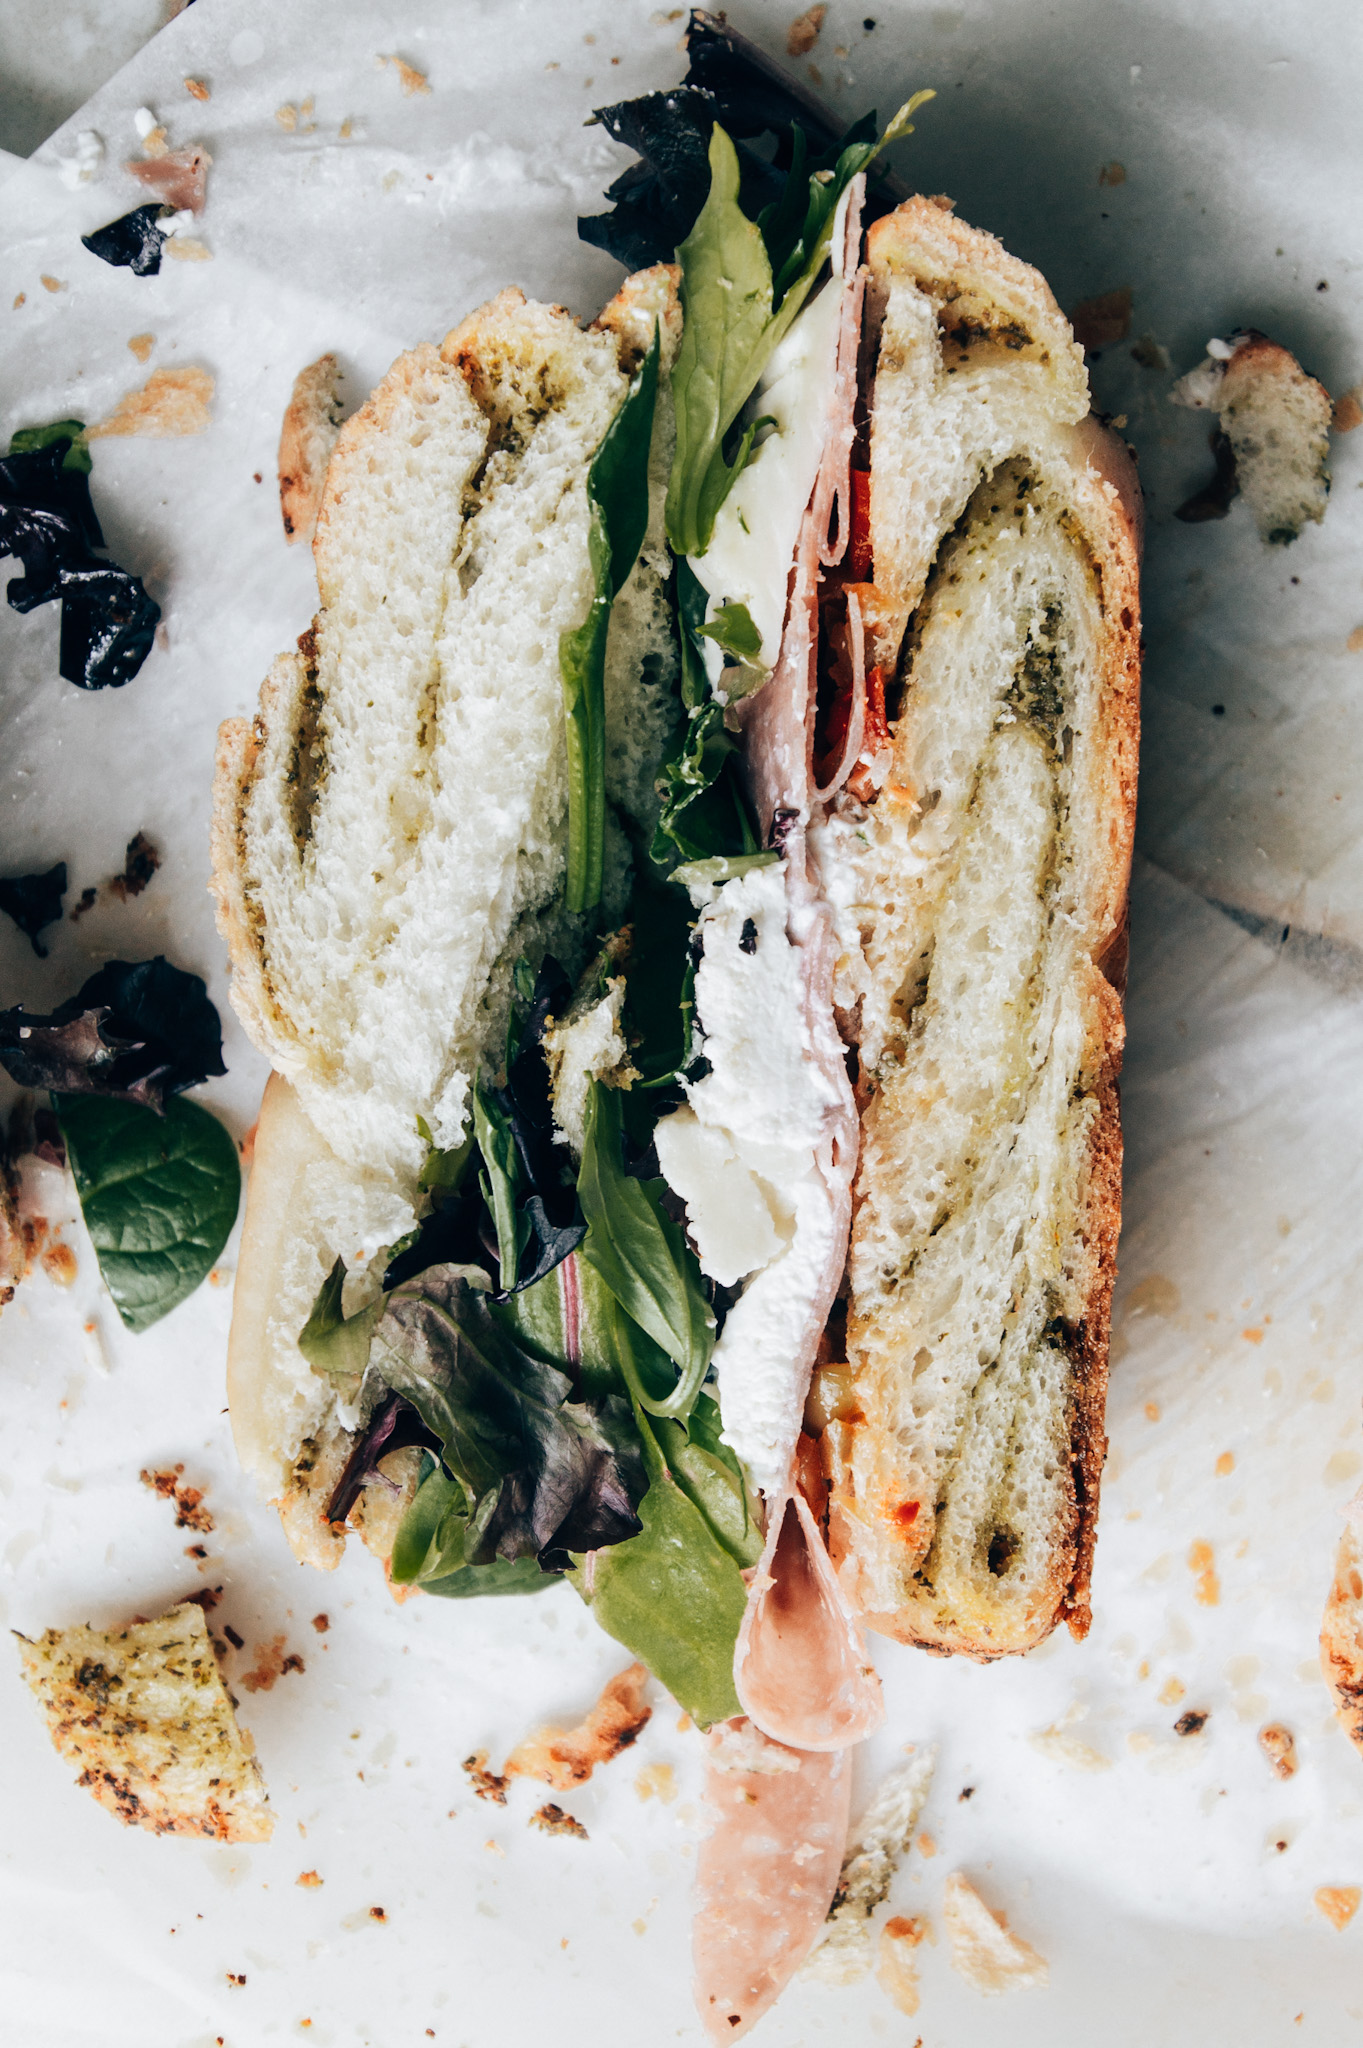 this muffuletta sandwich gets its unique look from swirls of pesto baked right into the bread